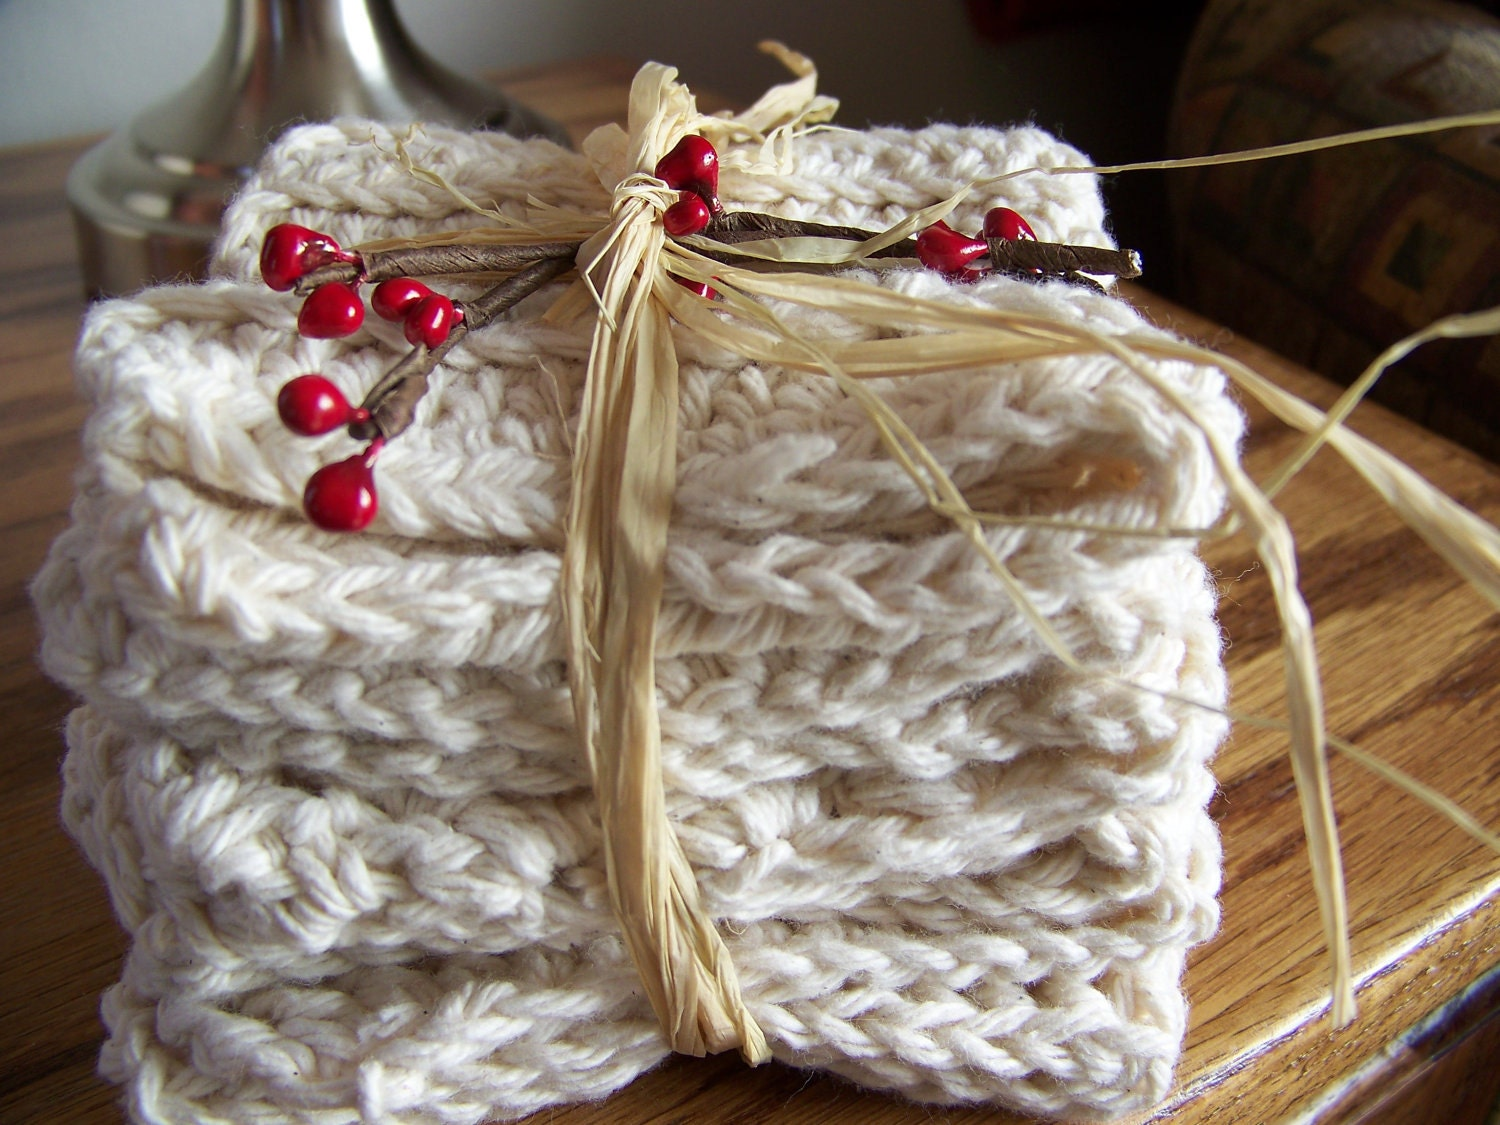 Set of 3 Ecru 100% Cotton Crocheted Dish Cloths Packaged for Gift Giving - MondaysChildPrims